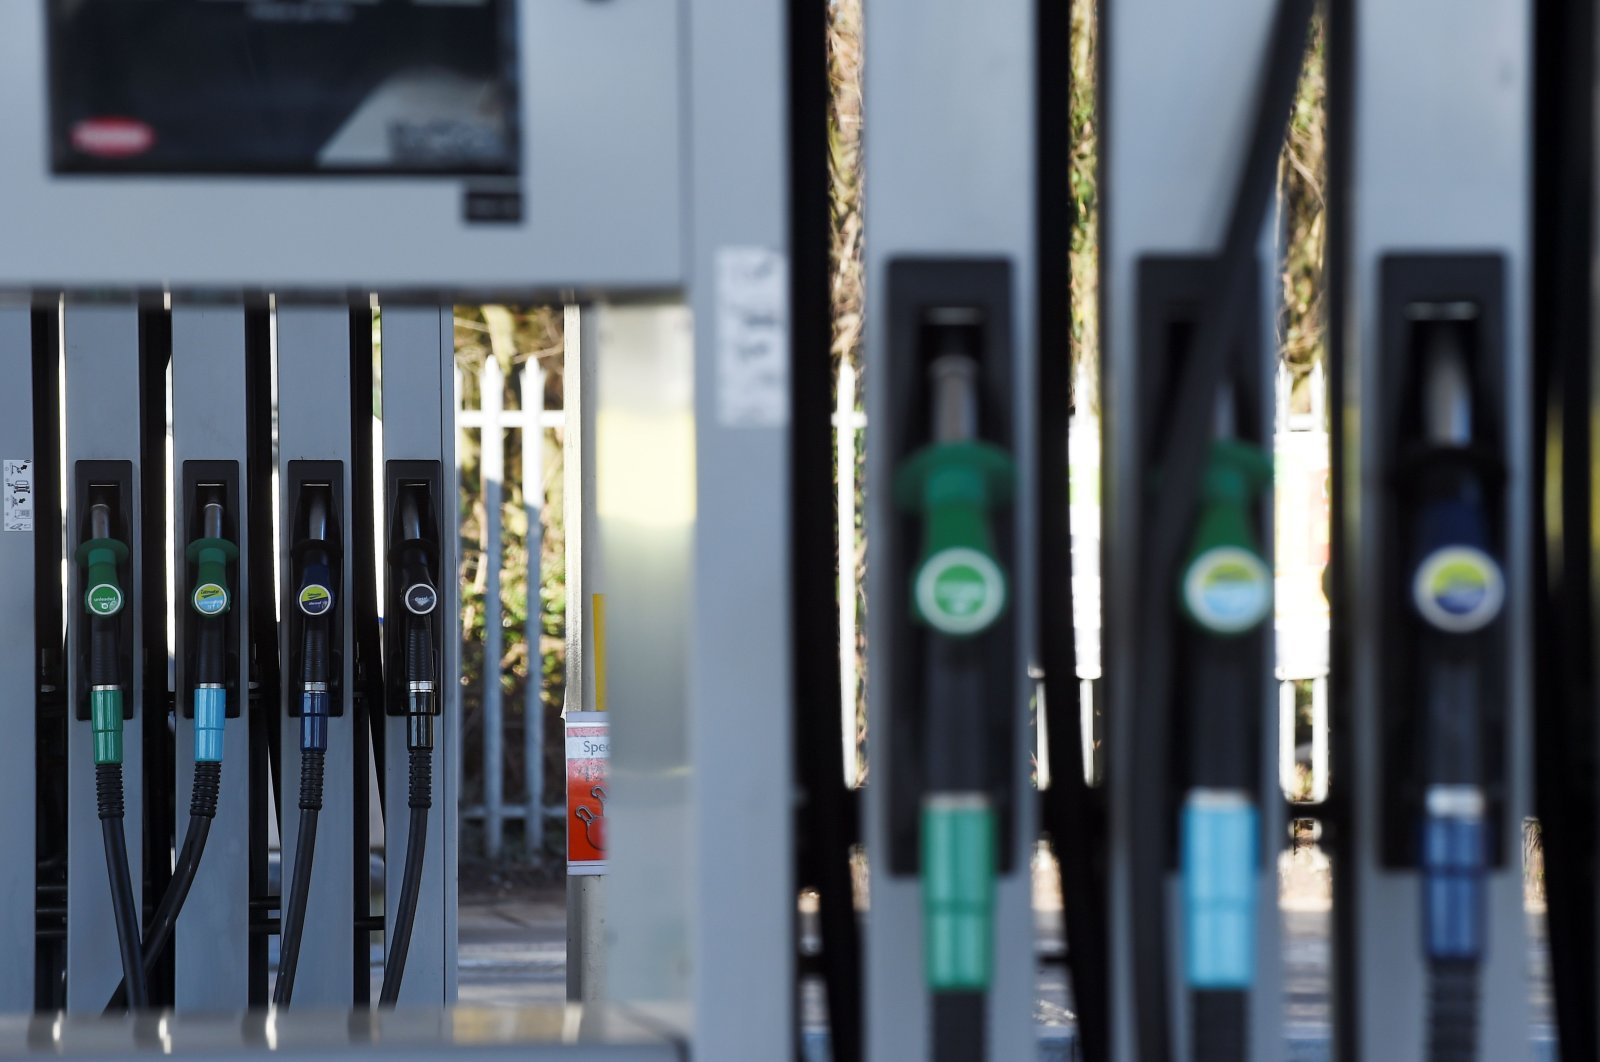 Petrol pumps are seen at a BP petrol station in Liverpool, northwest England, Feb. 7, 2018. (AFP Photo)